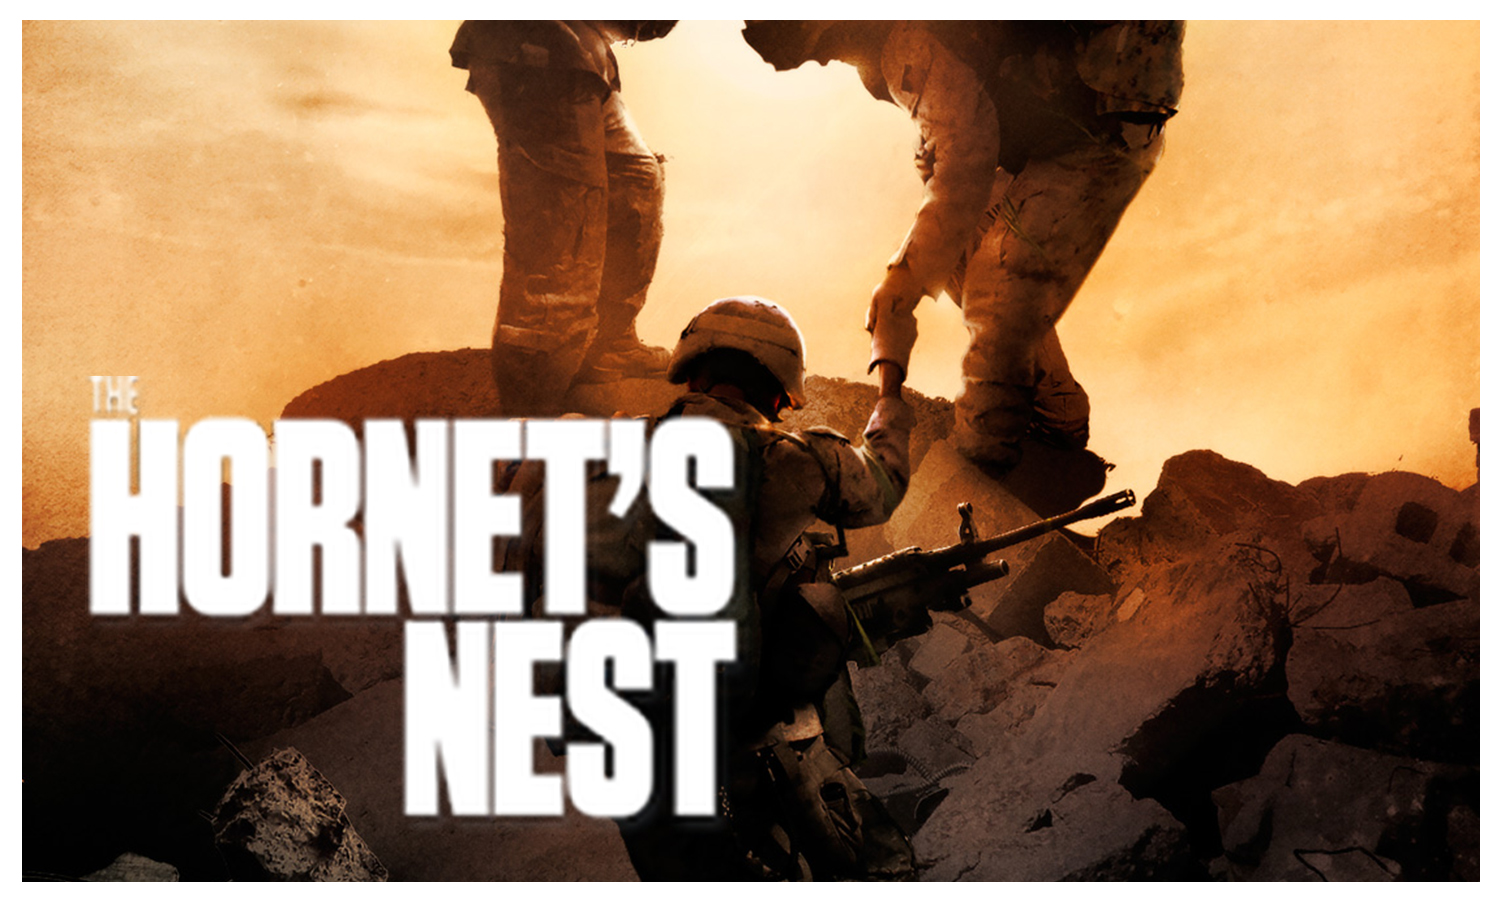 Journalist Mike Boettcher takes his son to the war zone in Afghanistan, covering U.S. Combat Troops on the front lines. What starts out as an effort to reconnect with his son, becomes a remarkable true story and fight for survival for all.    www.thehornetsnestmovie.com